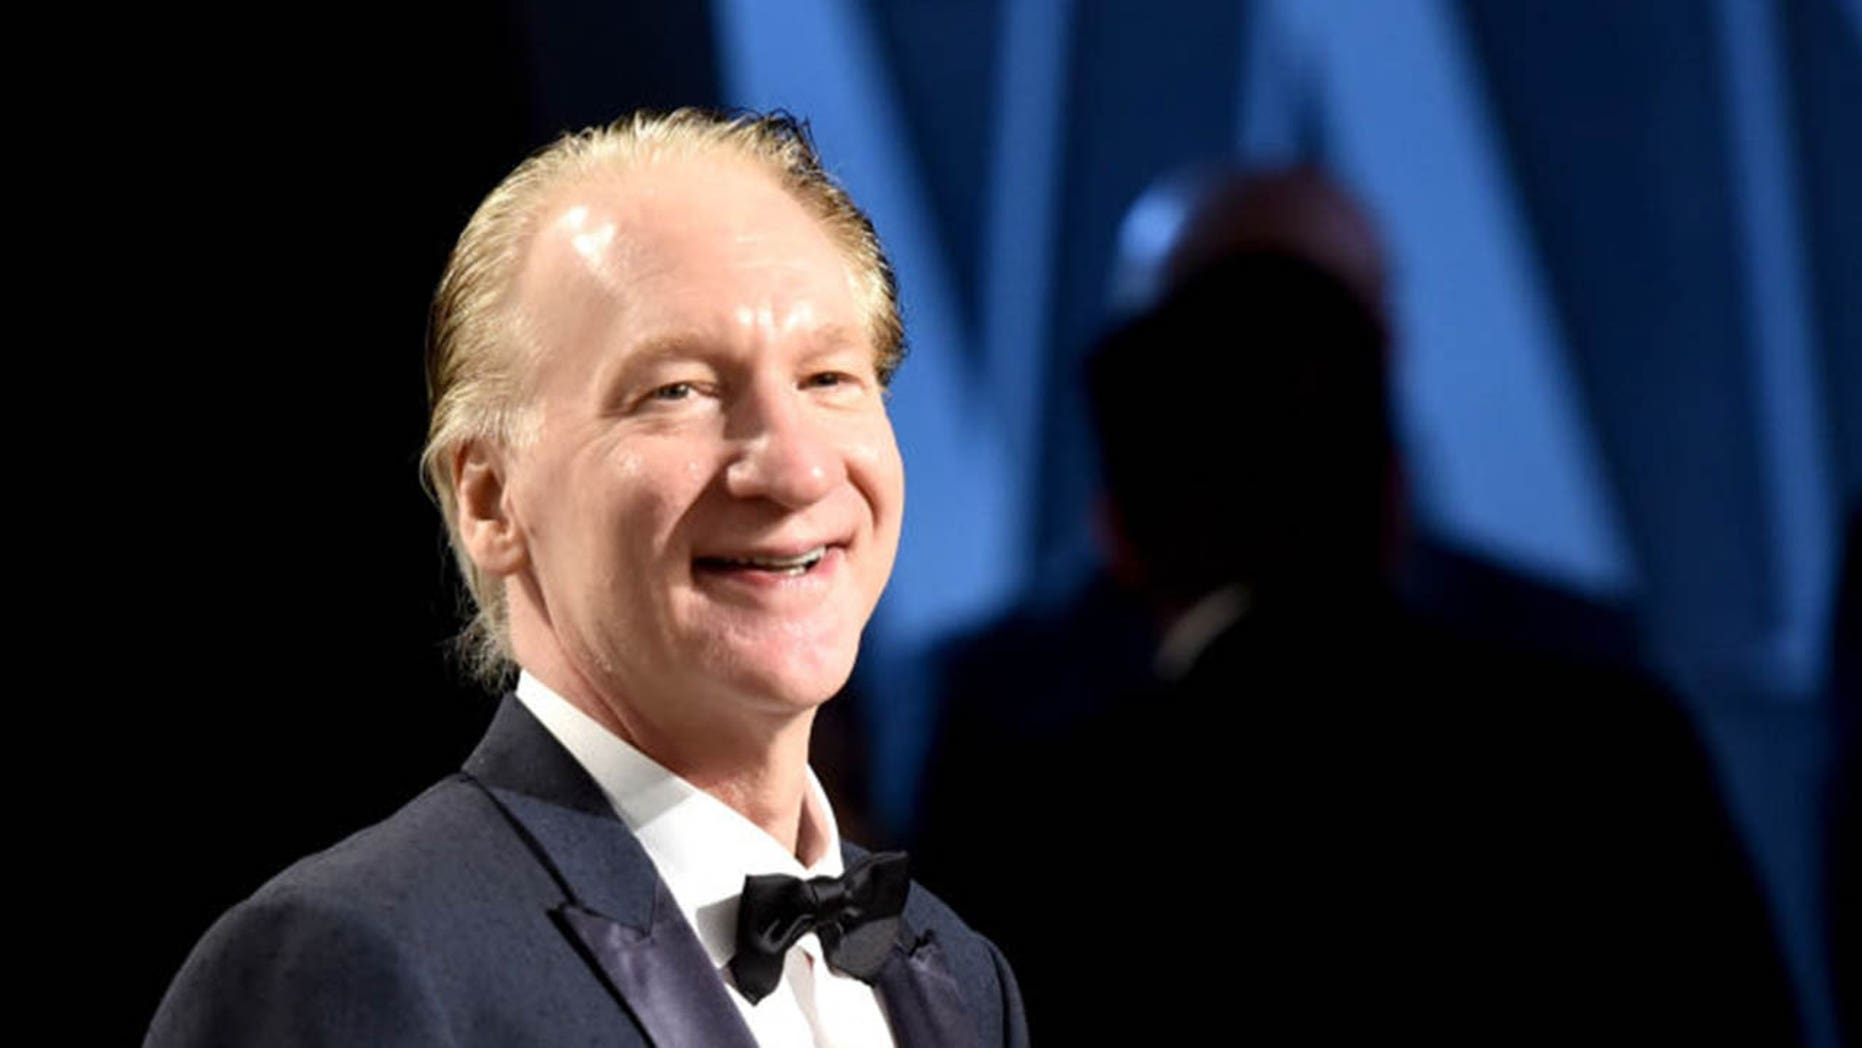 """Bill Maher on Monday tweeted that those who complained Beto O'Rourke's wife didn't speak in his video announcing his presidential announcement need to """"shut the f--- up."""""""